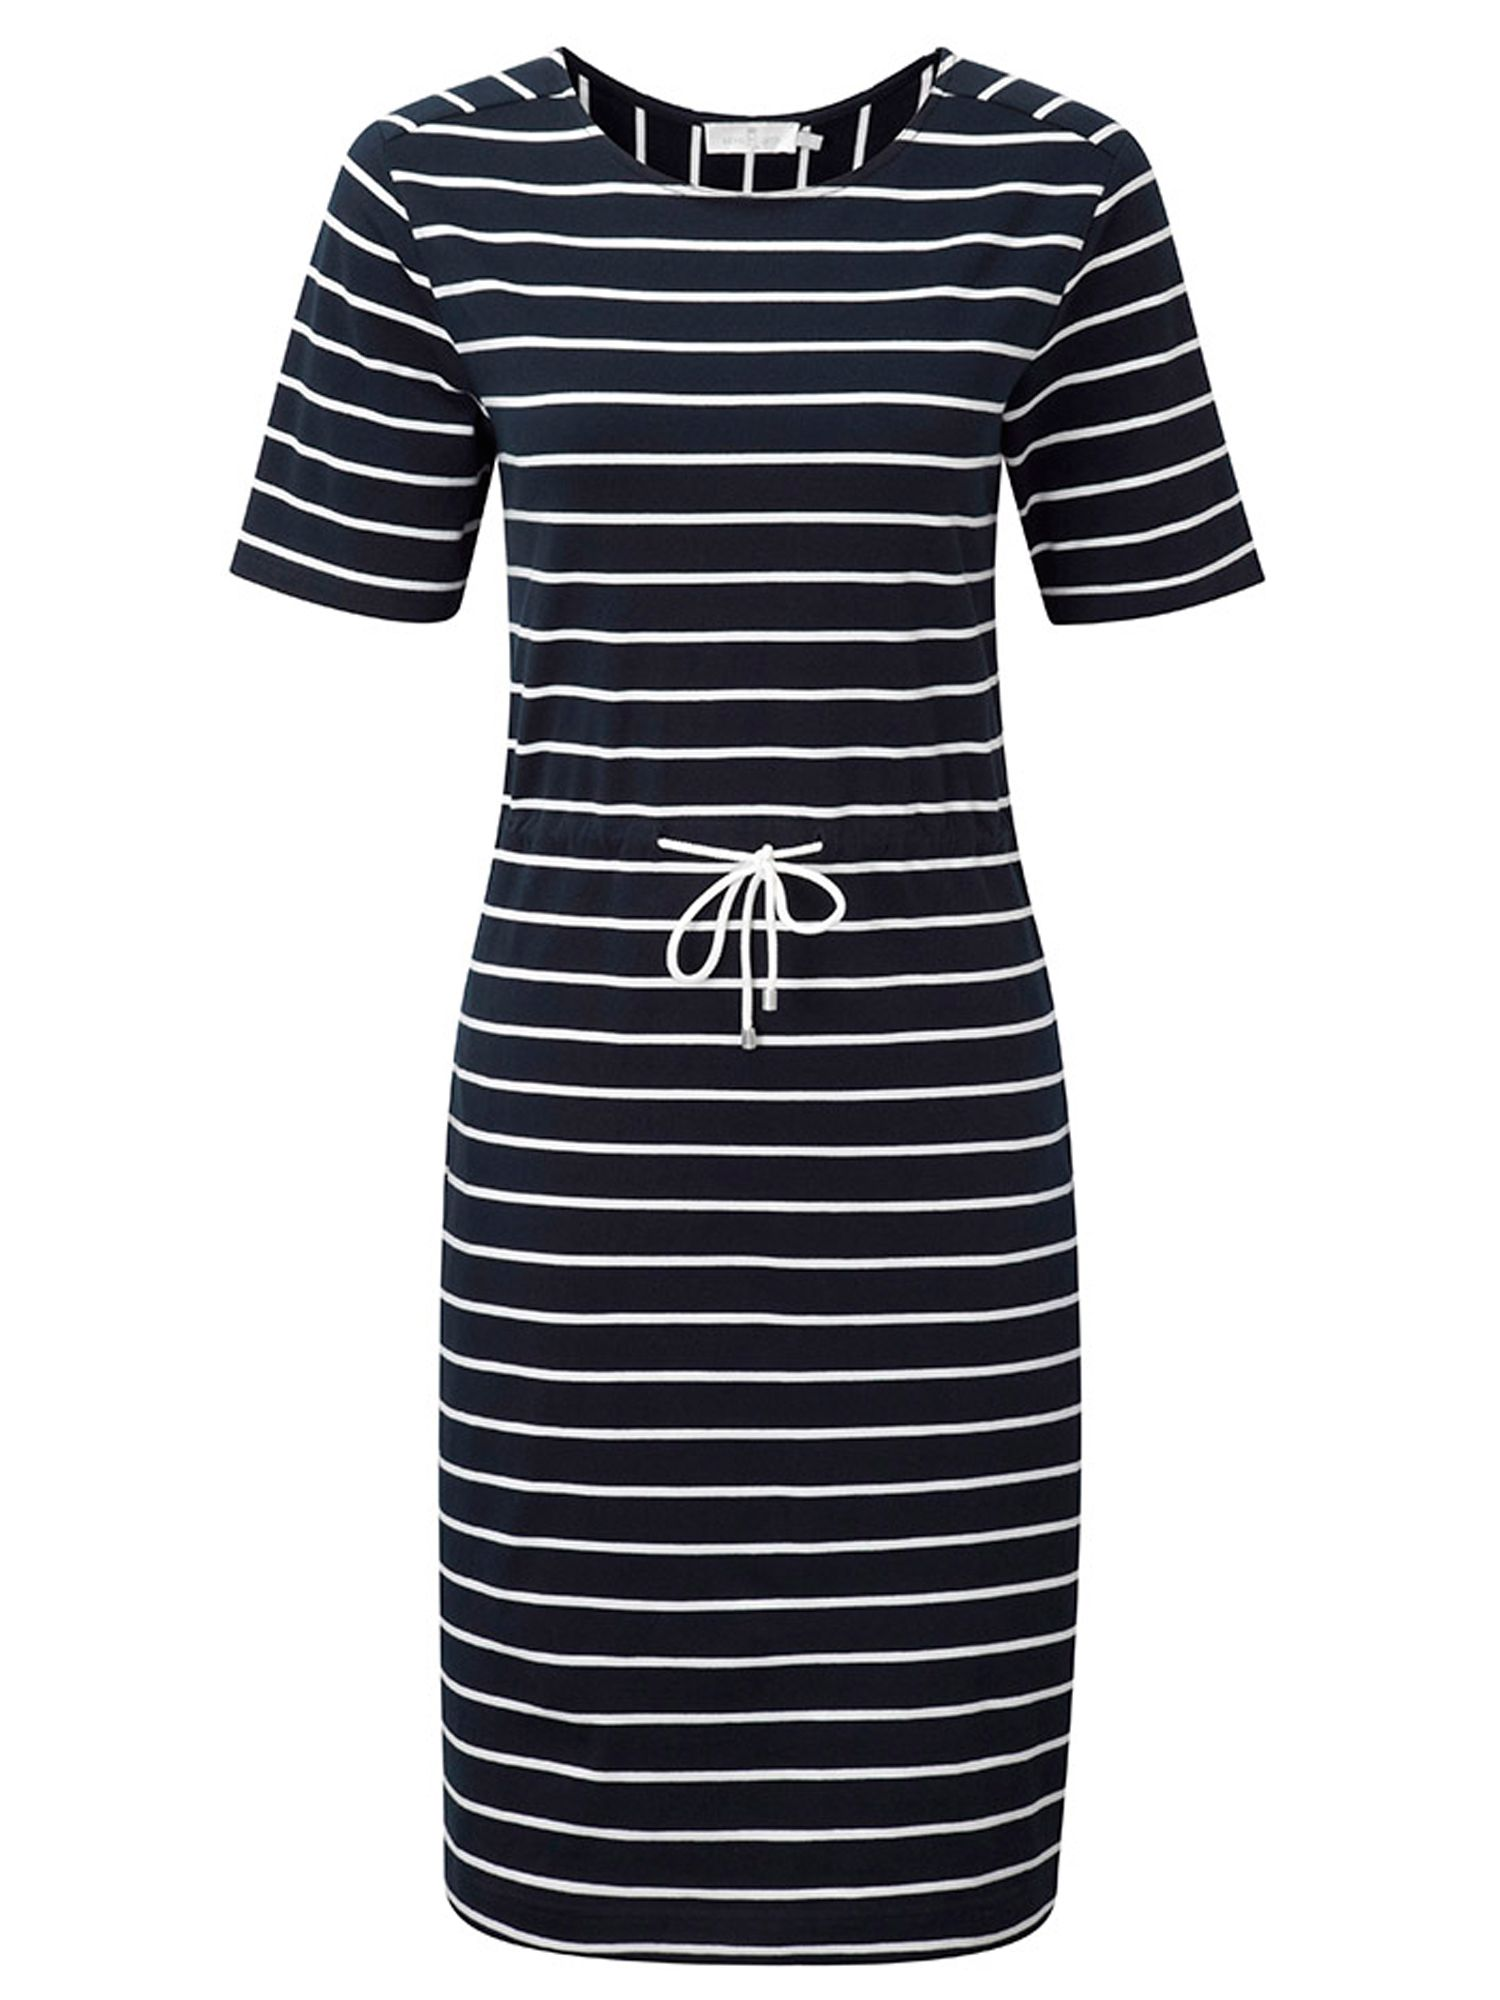 Henri Lloyd Maddie Stripe Dress, Blue